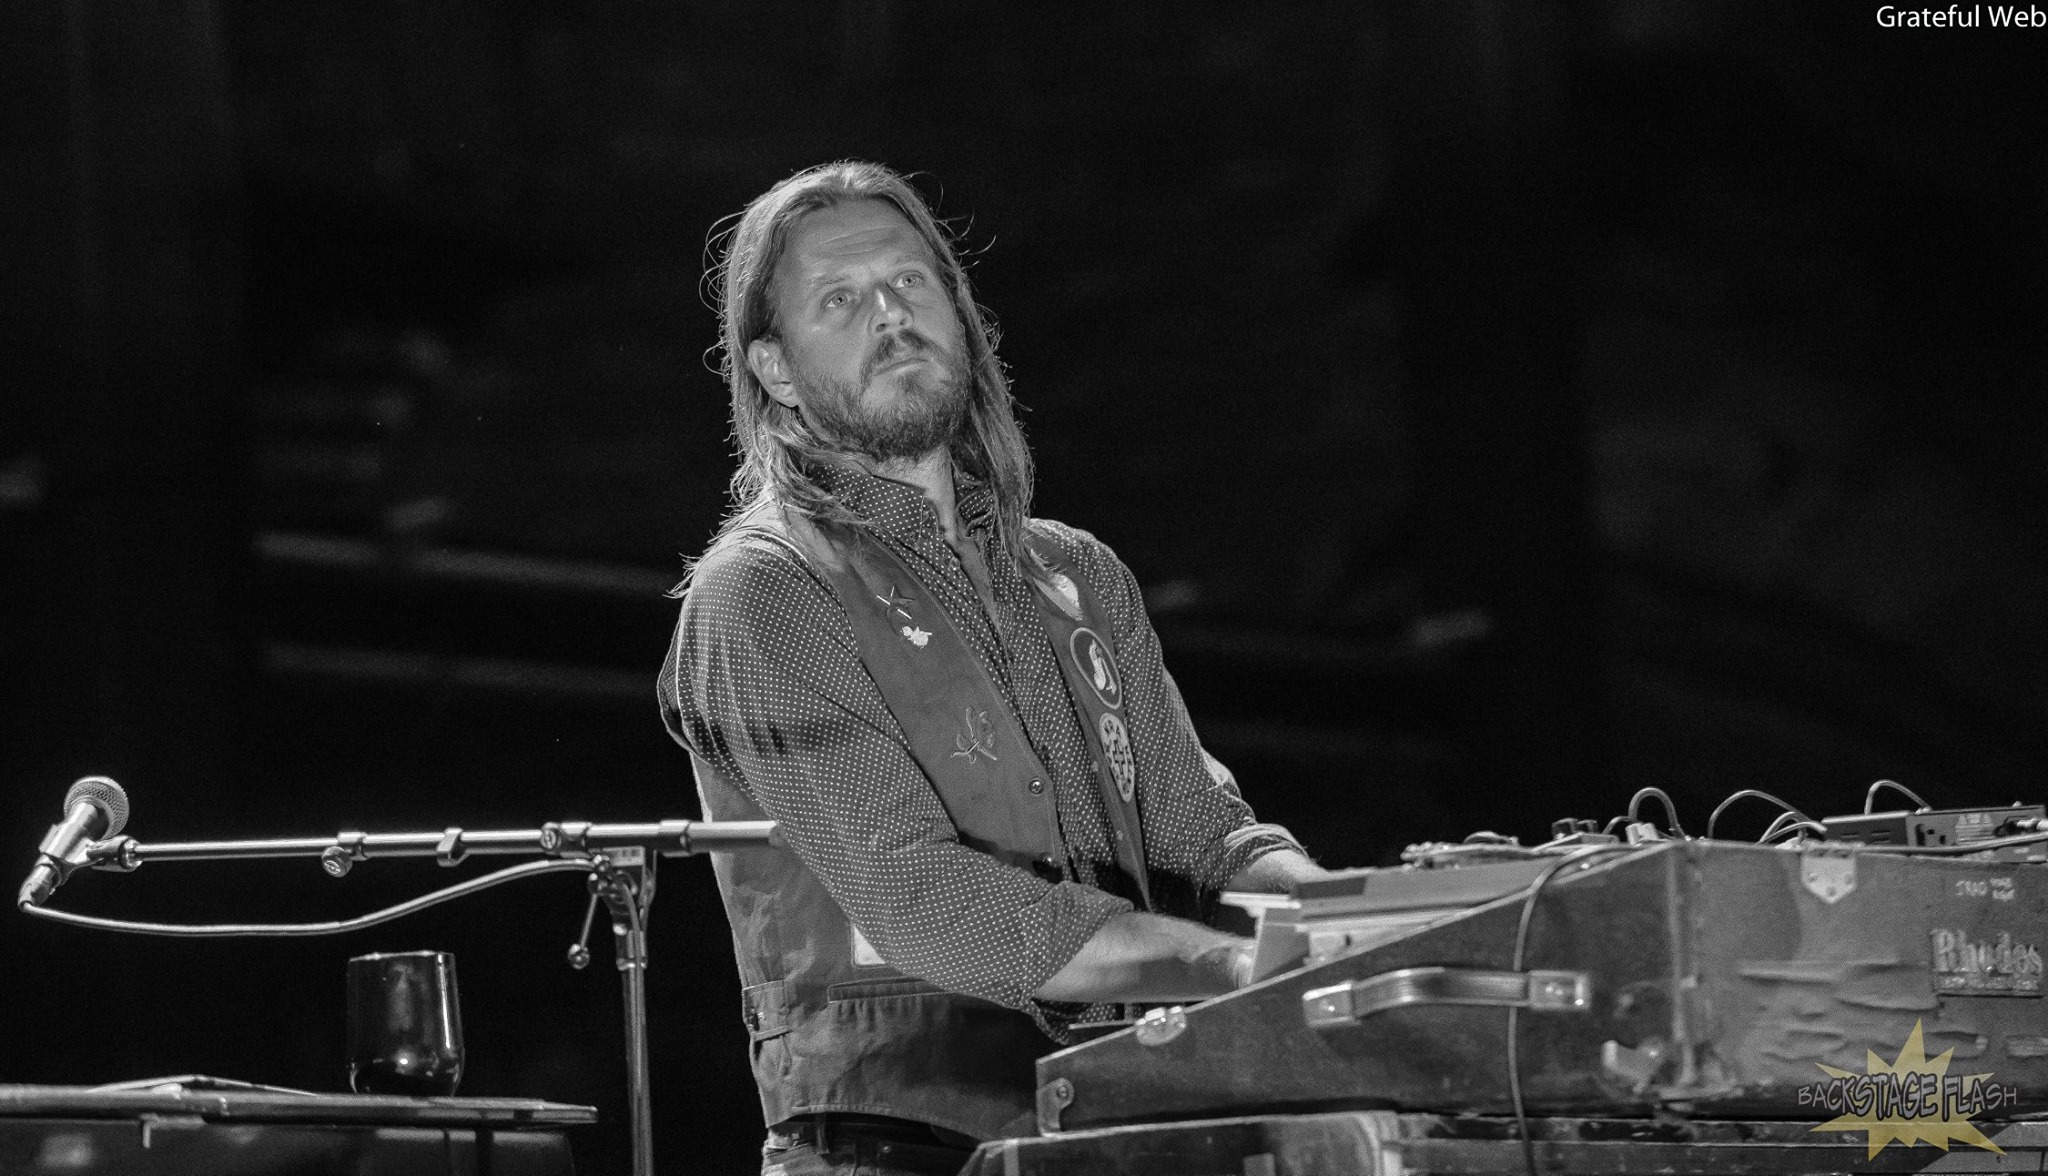 Marco Benevento Announces 'Let It Slide' - New Single & Video Out Now